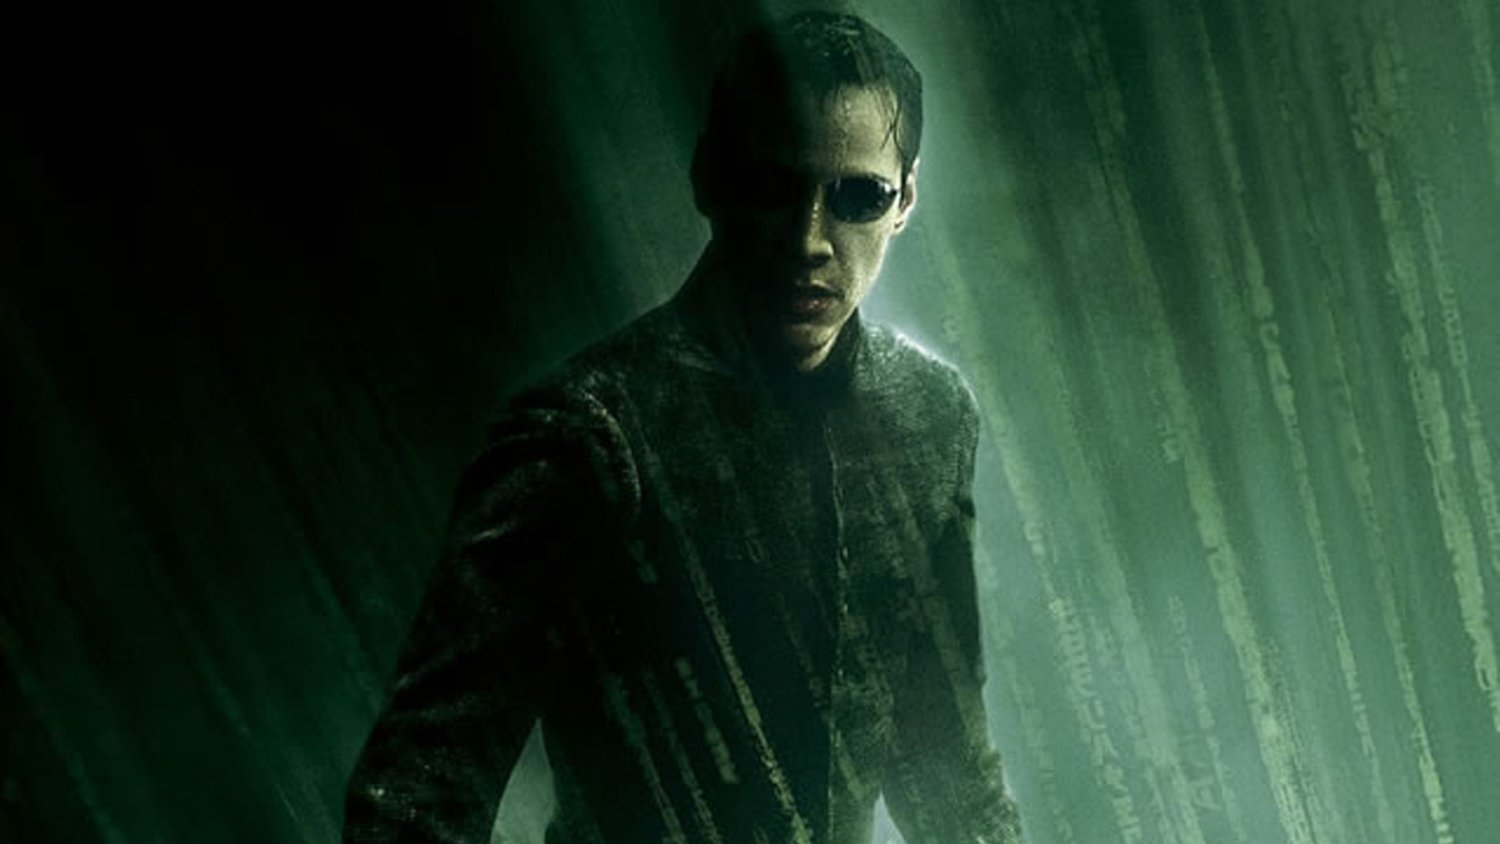 Keanu Reeves Says He's Up for a Fourth MATRIX Film Under the Right Conditions